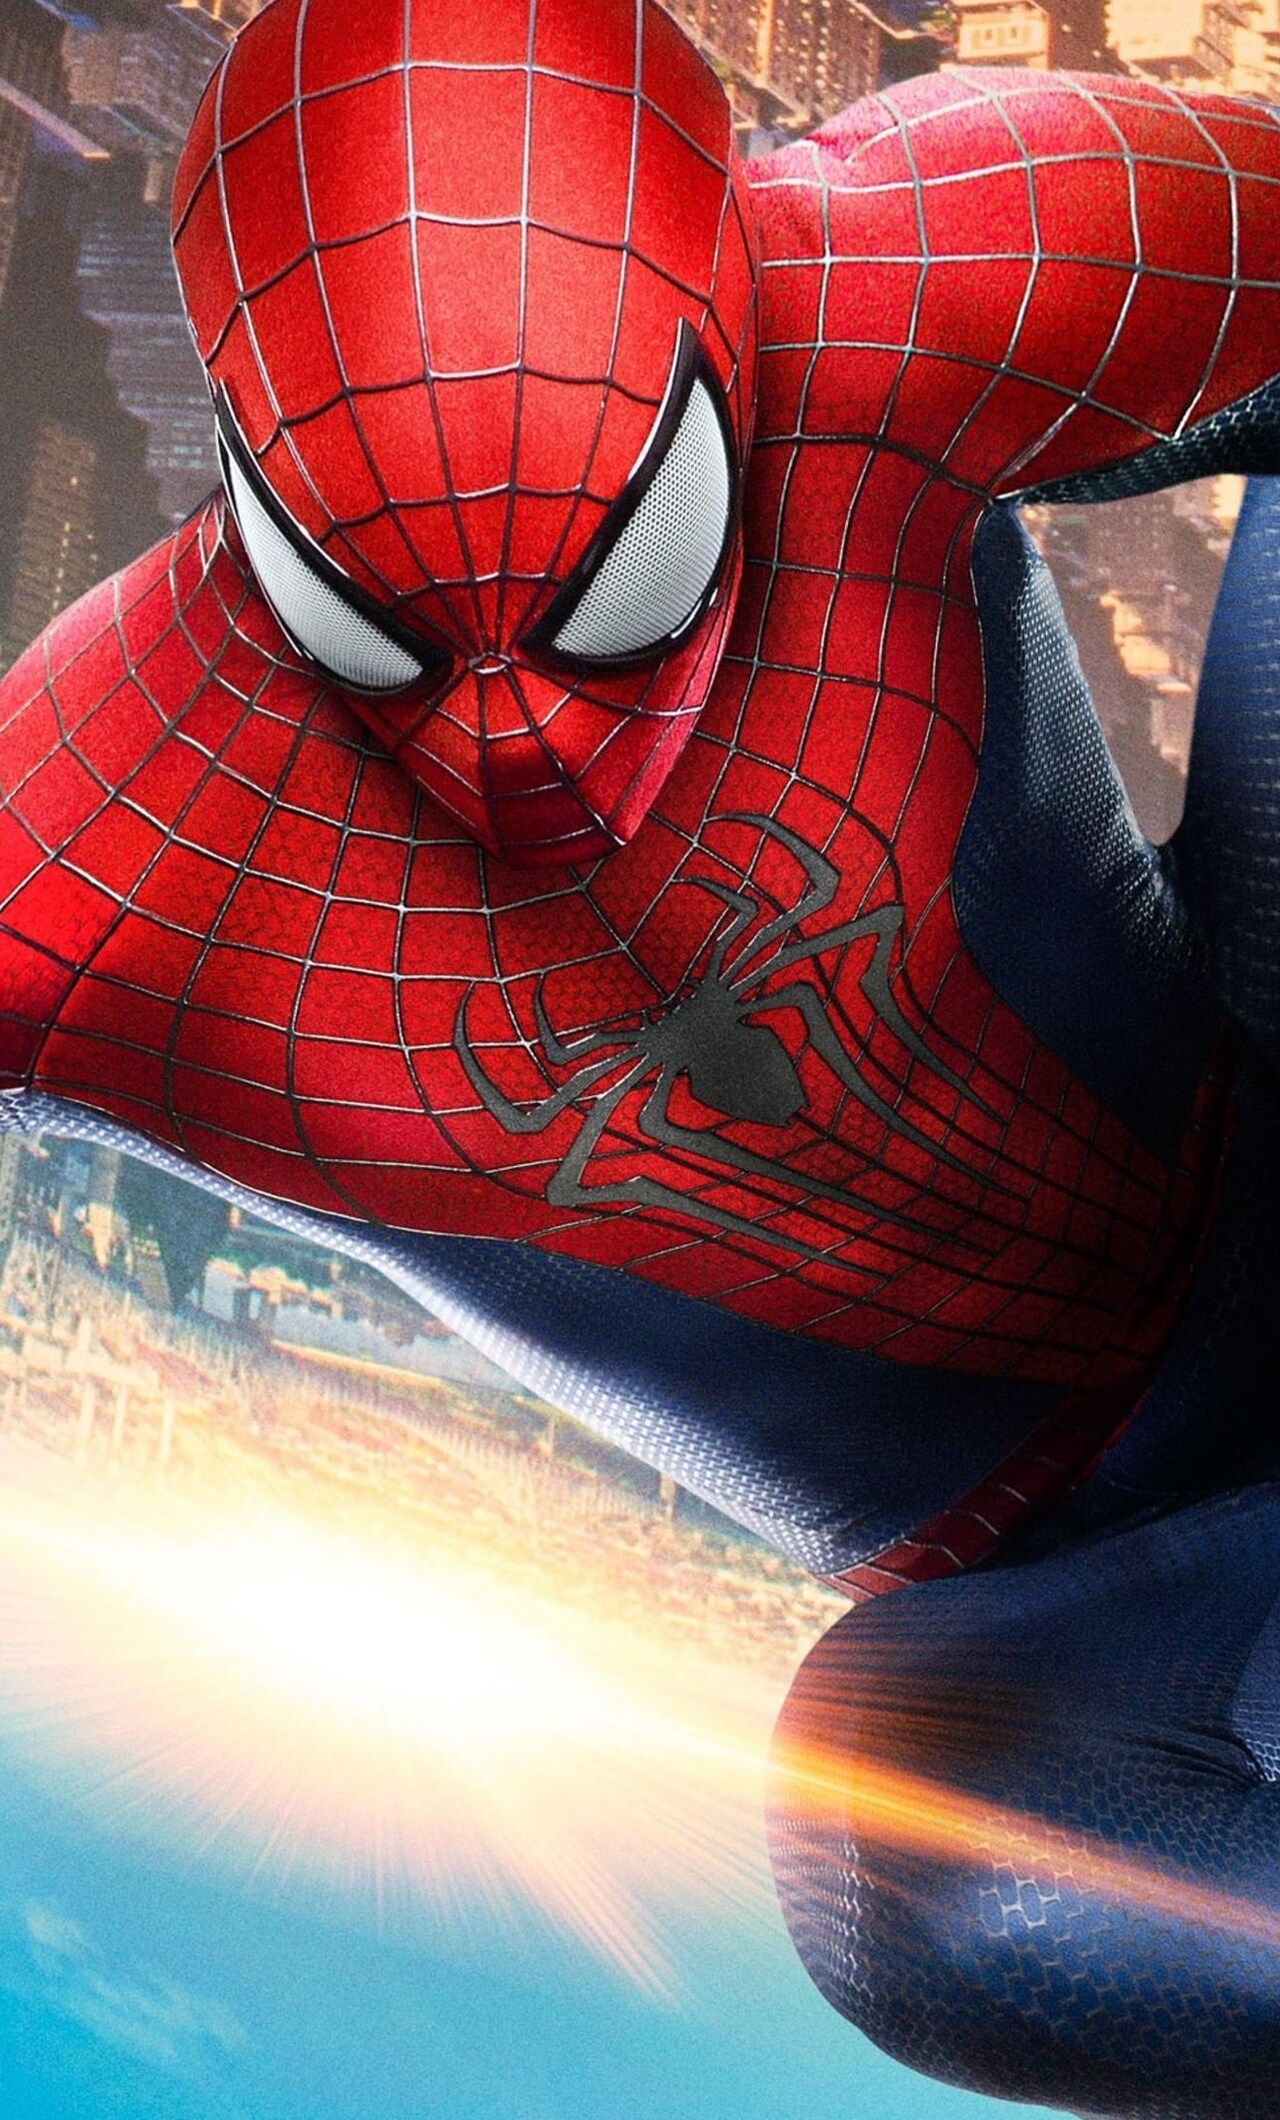 1280x2120 the amazing spider man 2 iphone 6+ hd 4k wallpapers